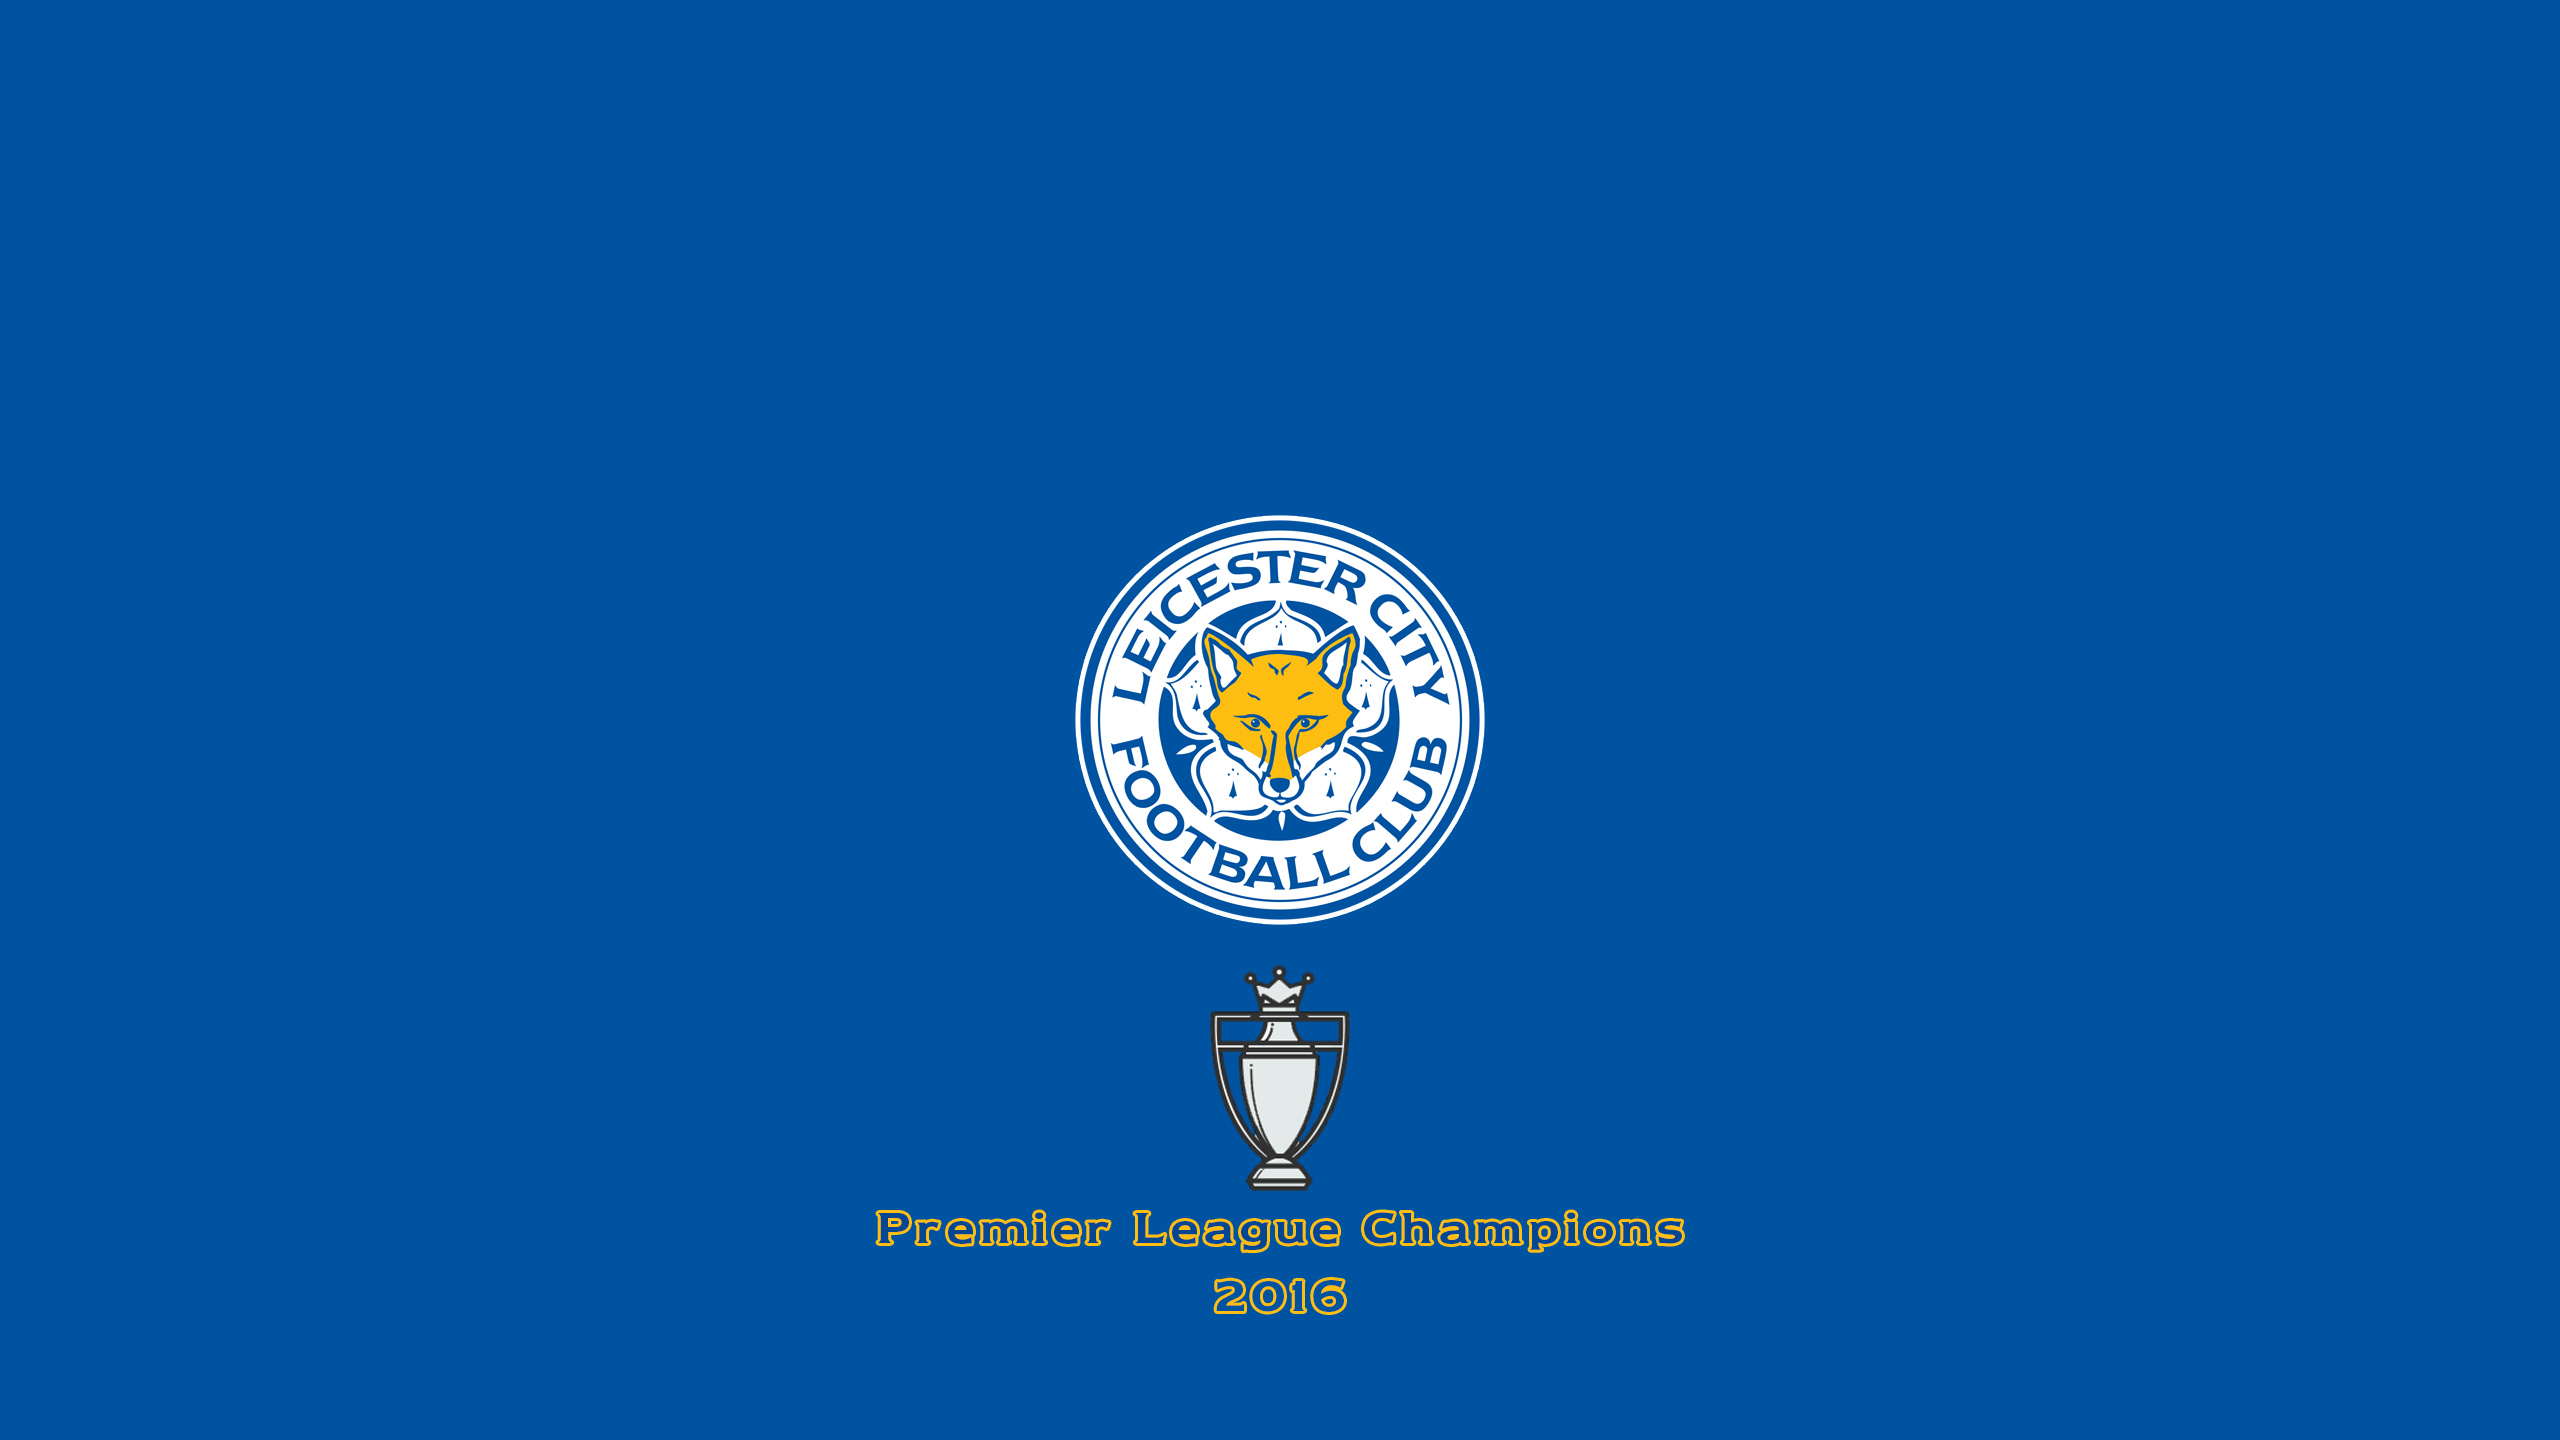 Leicester City FC - EPL Champs